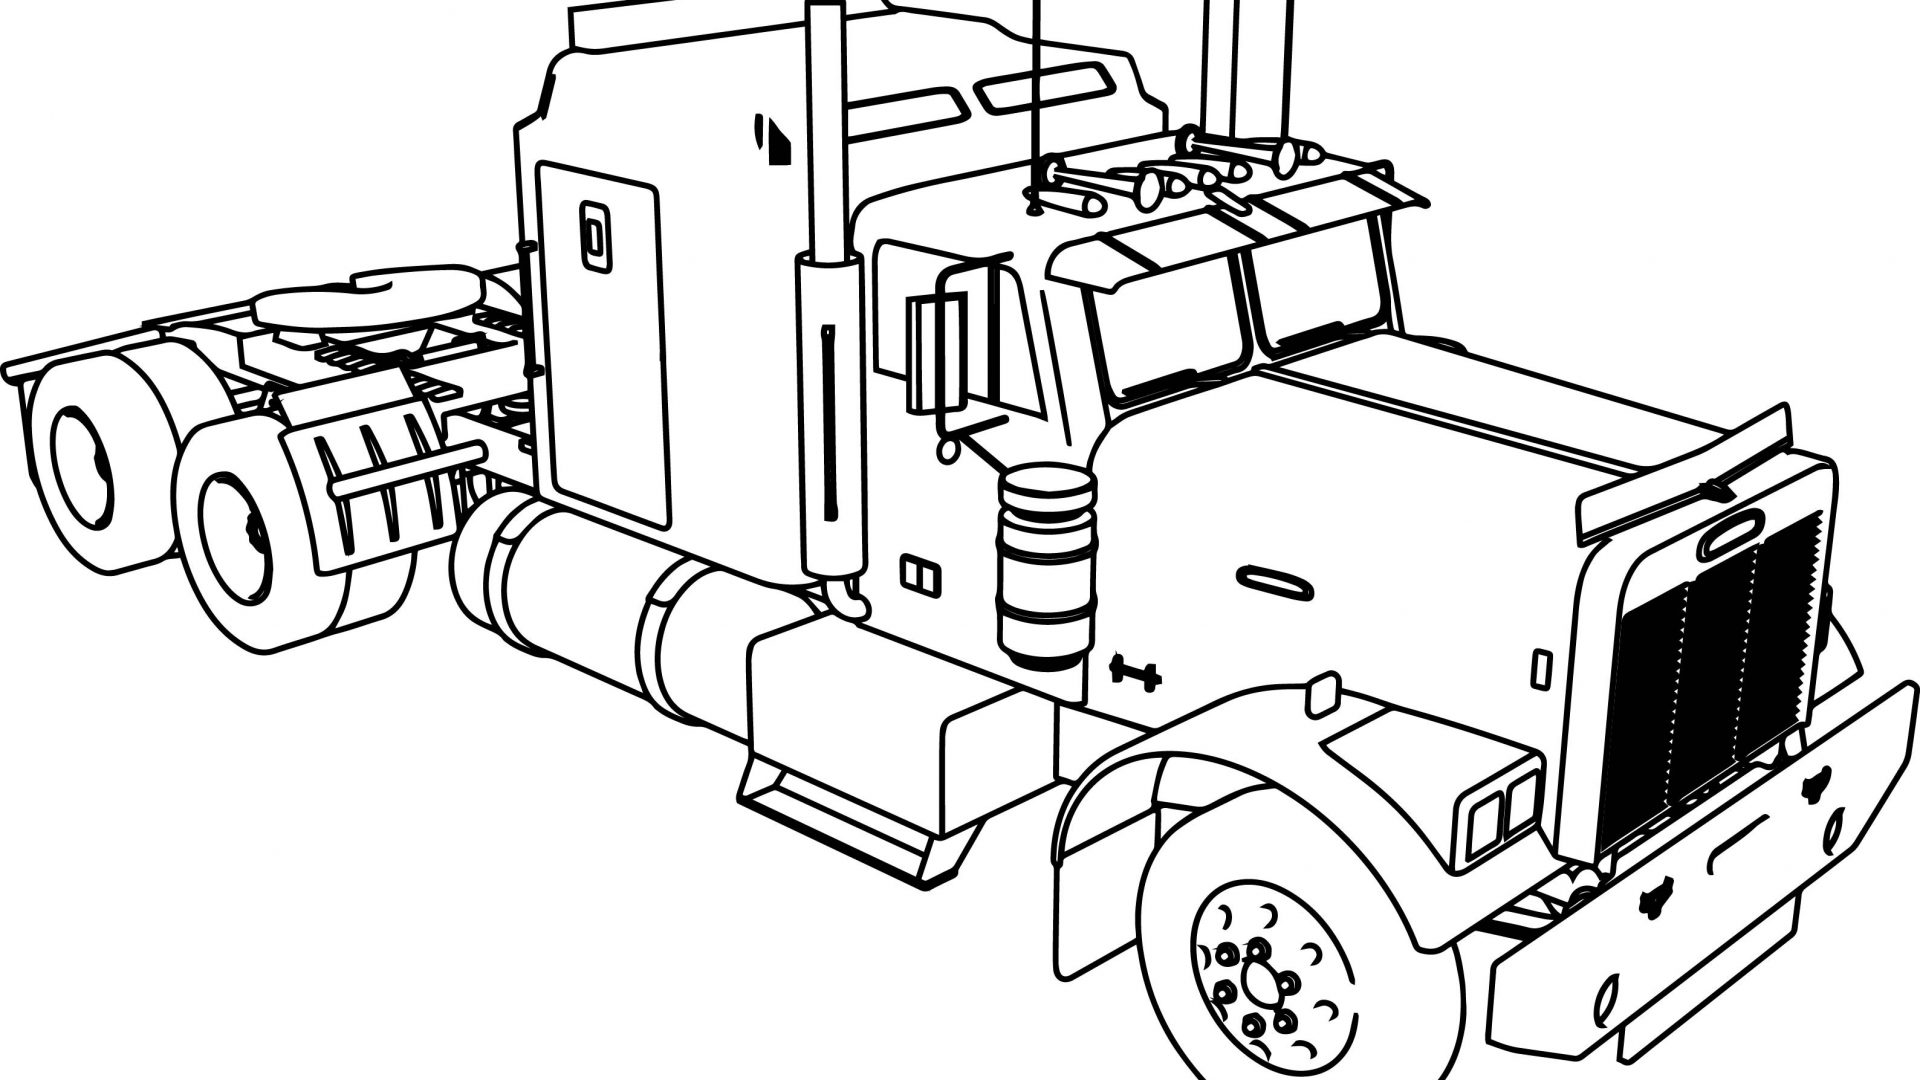 lifted truck coloring pages lifted truck coloring pages at getcoloringscom free coloring lifted pages truck